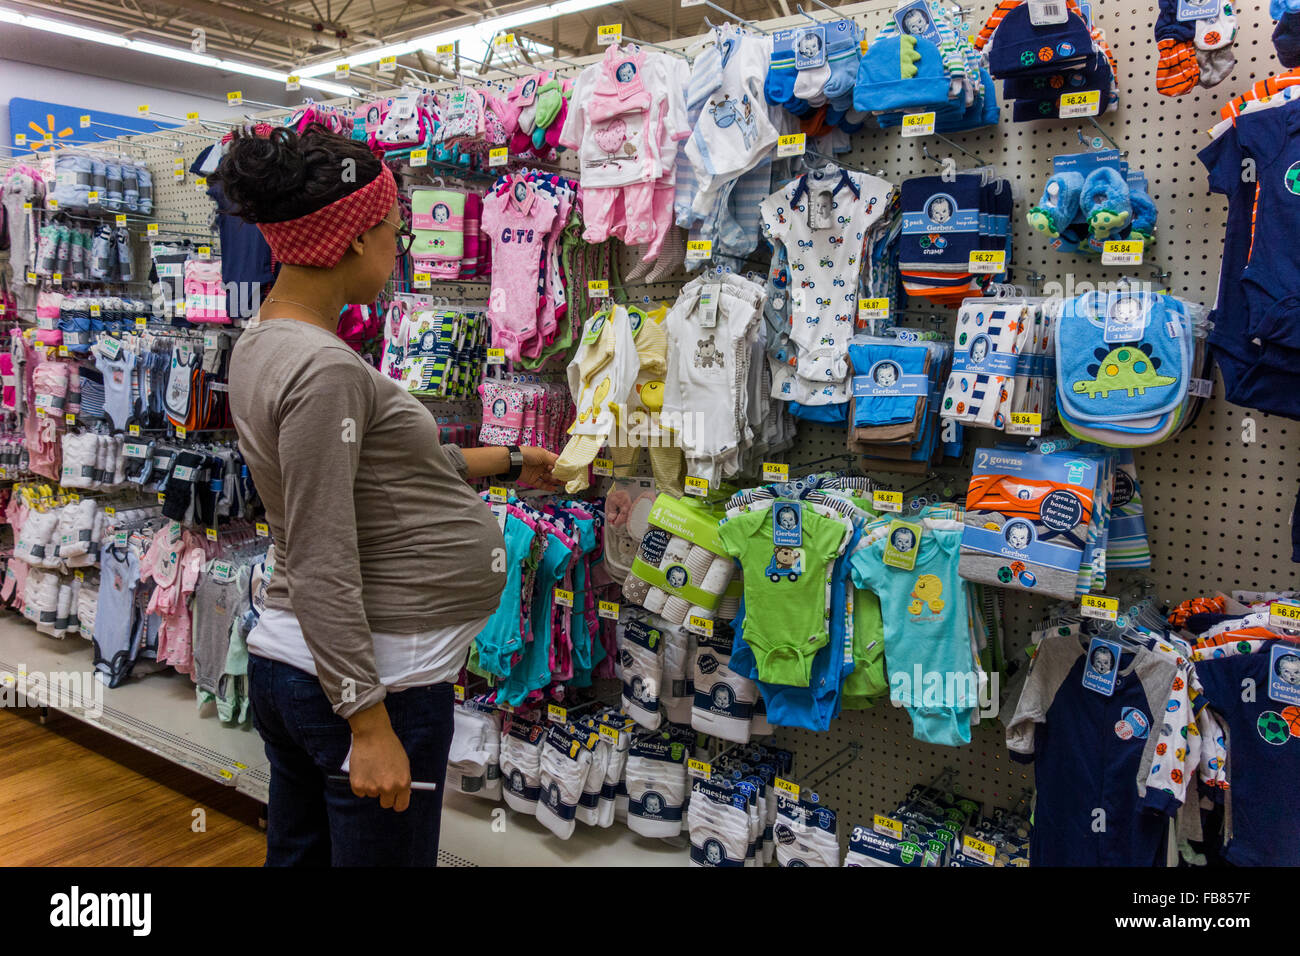 new walmart stock photos new walmart stock images alamy pregnant w looking at baby clothes walmart store pasco washington state usa